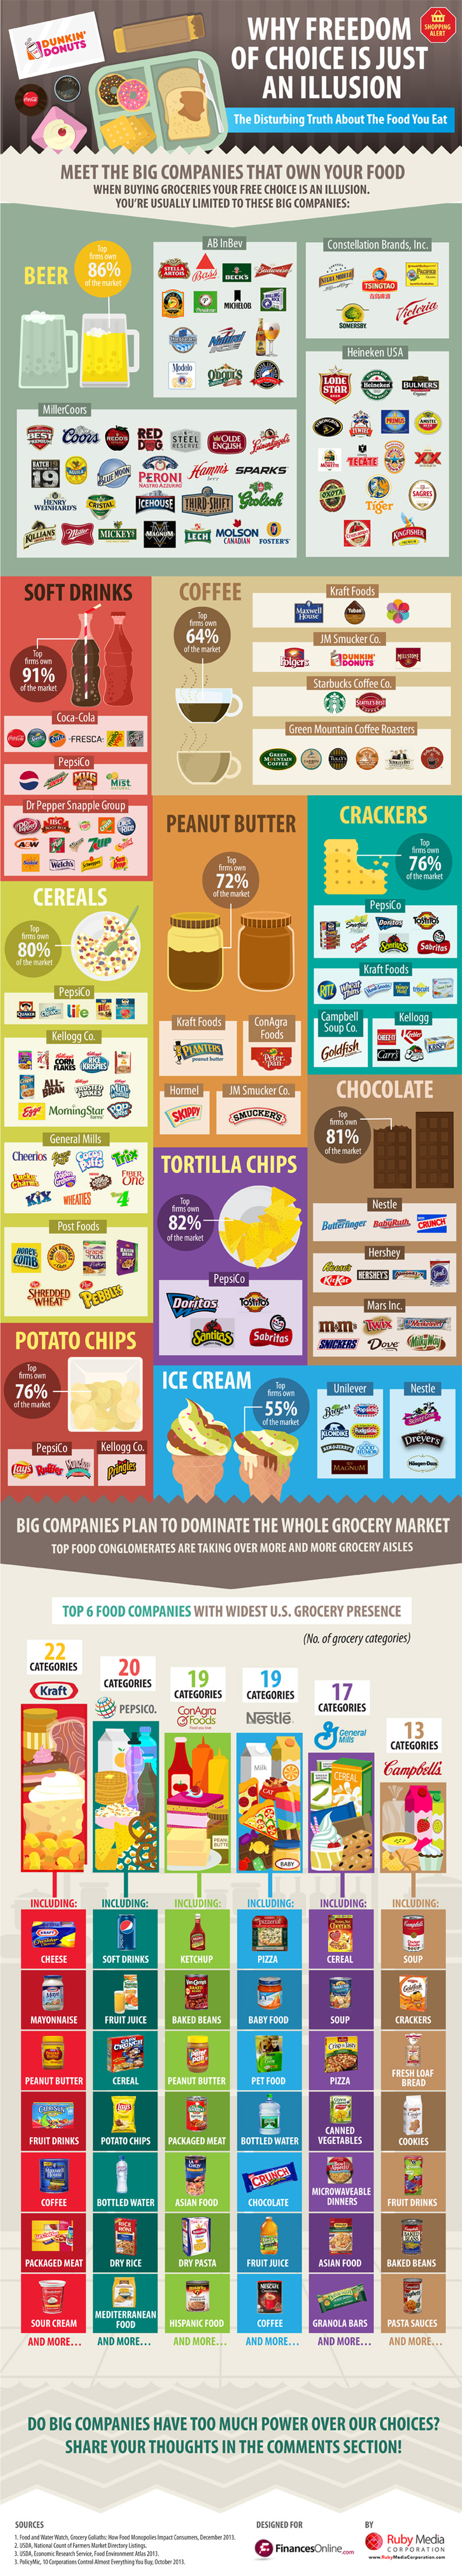 Top Grocery Brands Comparison: Nestle, Hershey and Mars Rule Over 81% of the Chocolate Market